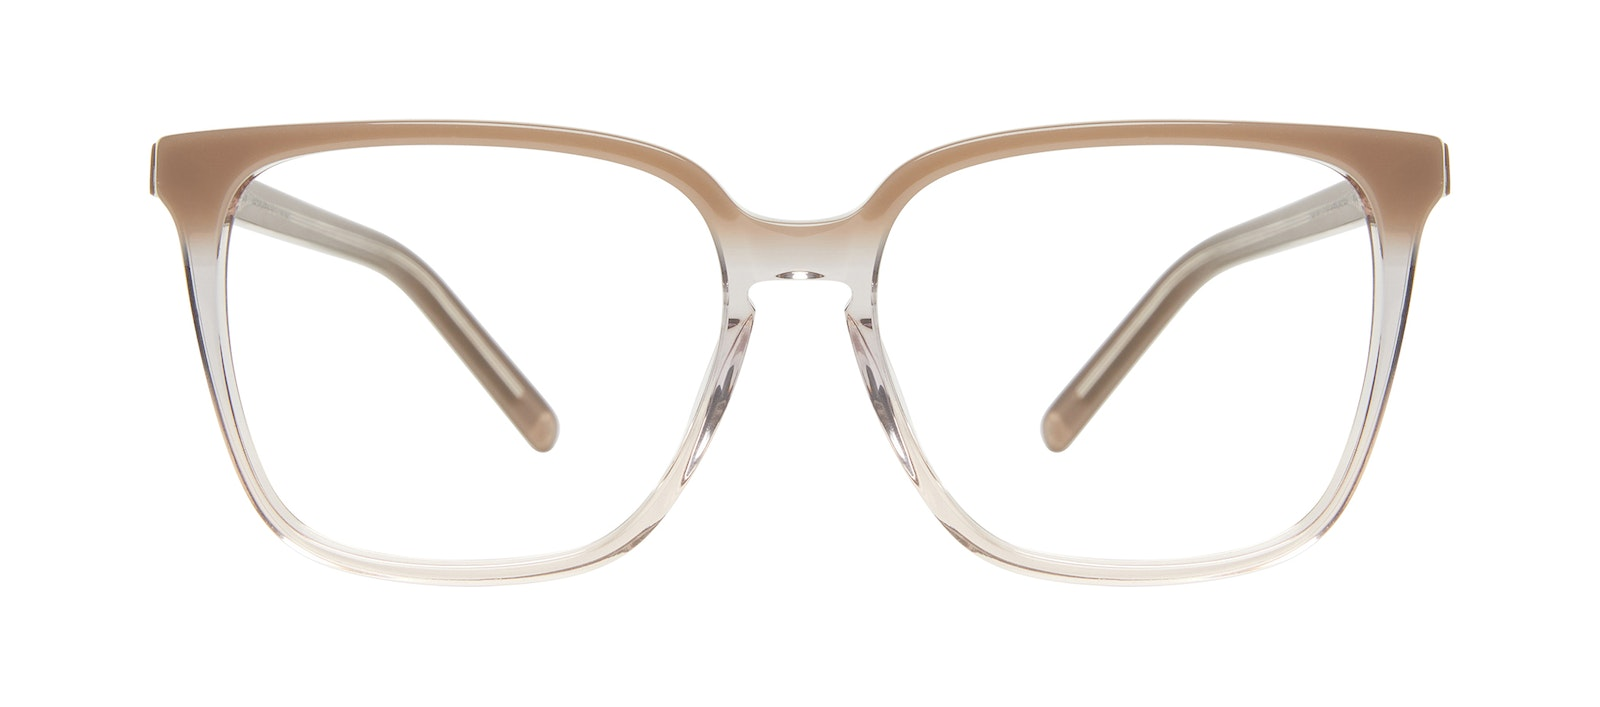 Affordable Fashion Glasses Square Eyeglasses Women Runway Smokey Ombré Front